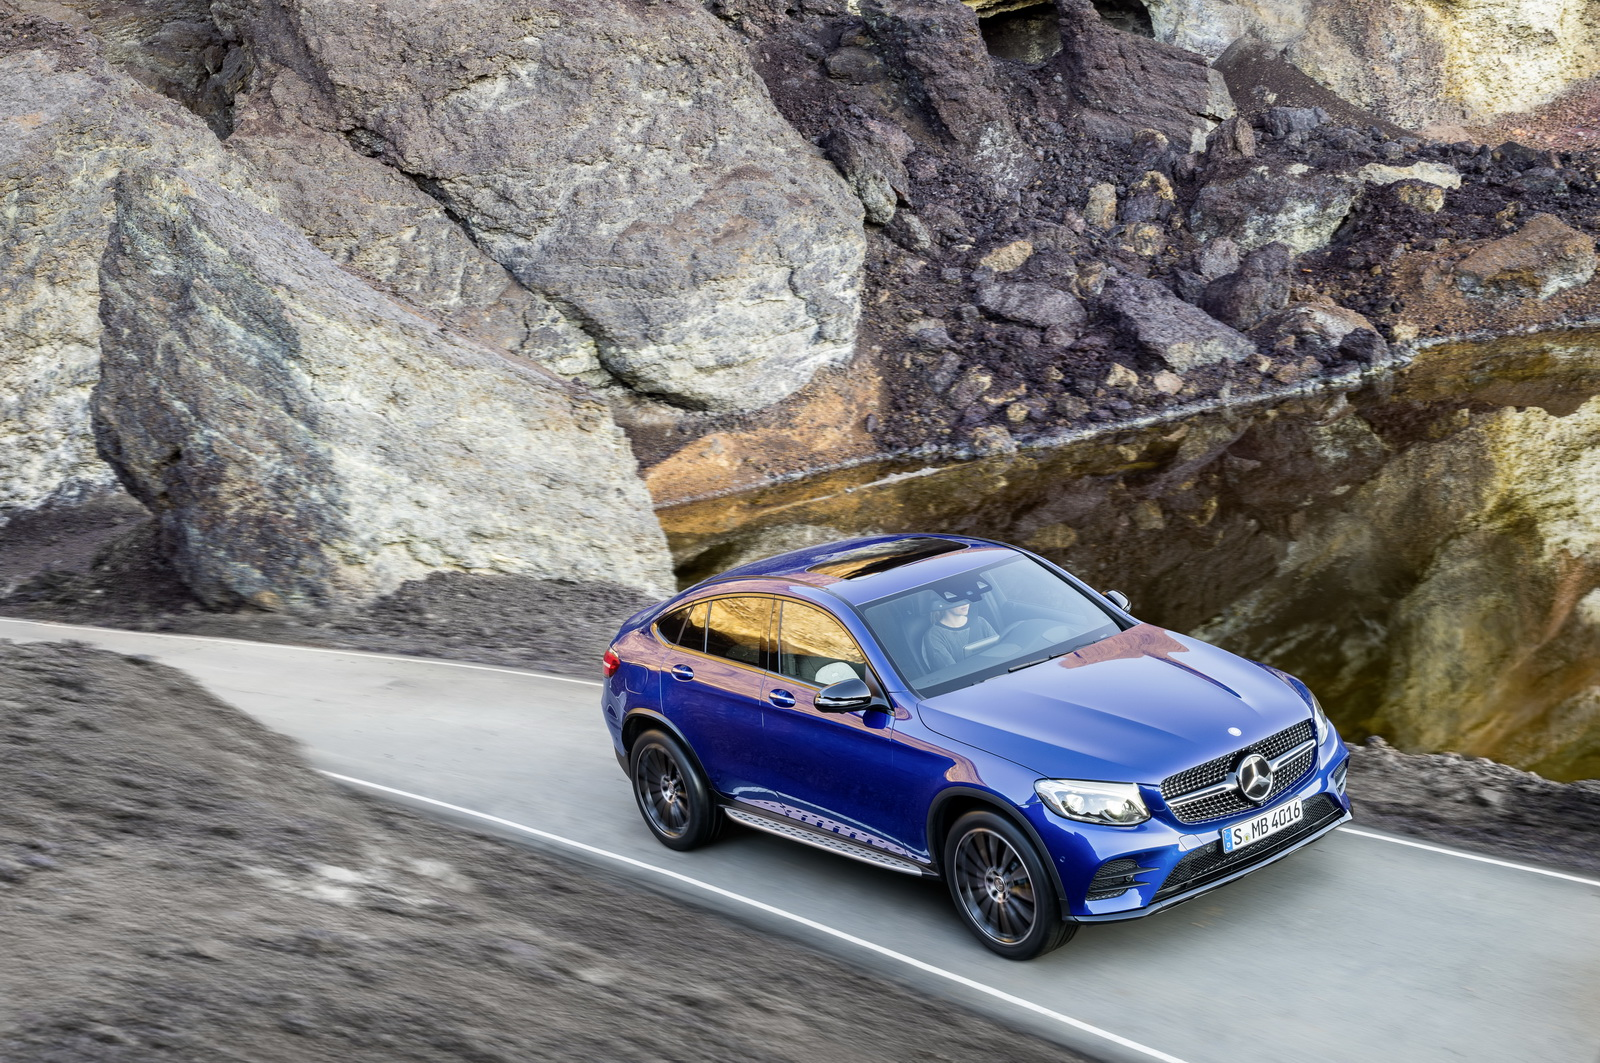 new mercedes glc coupe priced from 49 444 in germany carscoops. Black Bedroom Furniture Sets. Home Design Ideas